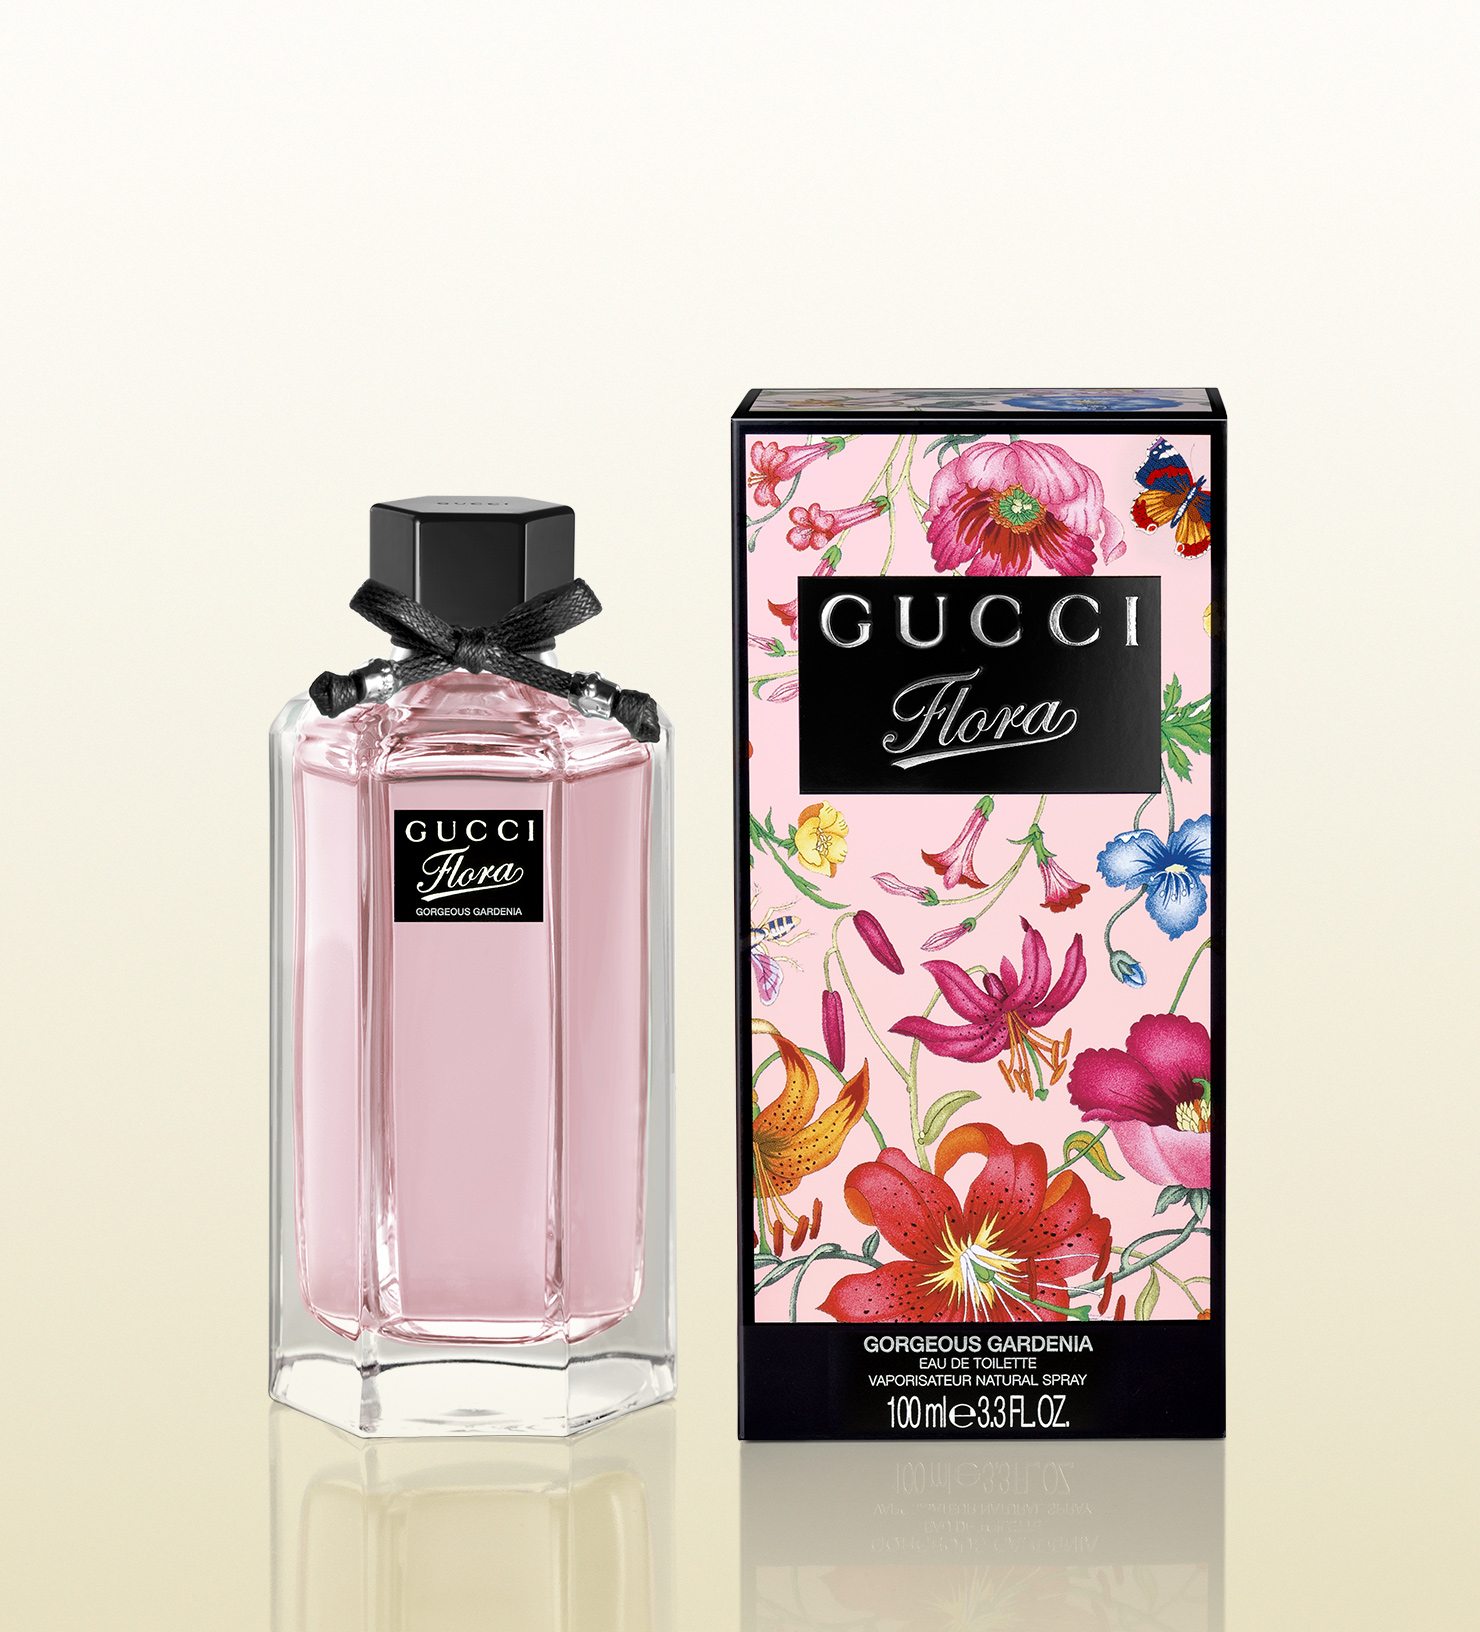 flora by gucci gorgeous gardenia gucci perfume a fragrance for women 2012. Black Bedroom Furniture Sets. Home Design Ideas